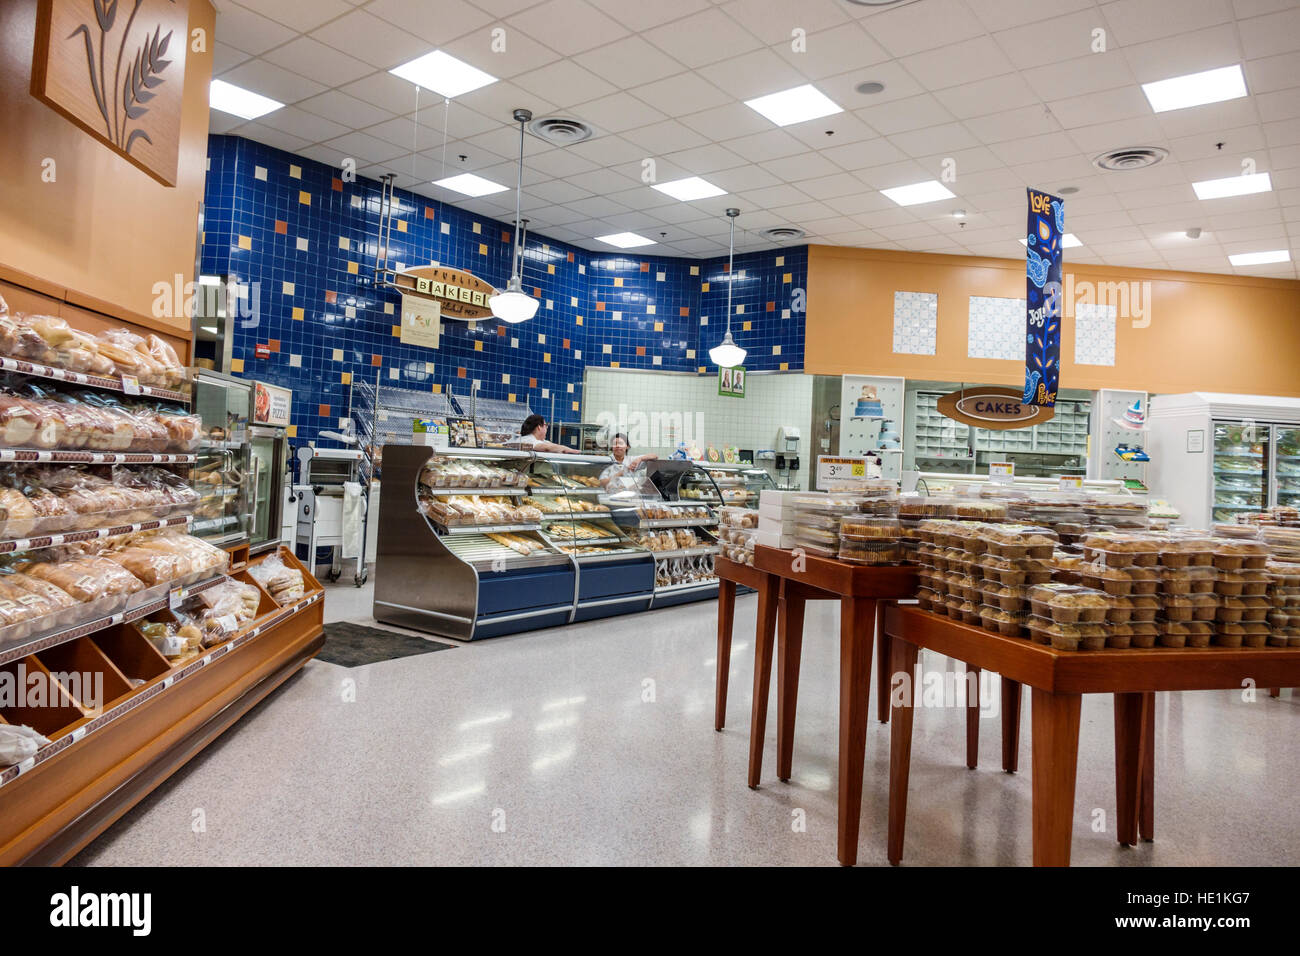 Fort Myers Florida Ft Publix Supermarket Grocery Store Interior Food Bakery